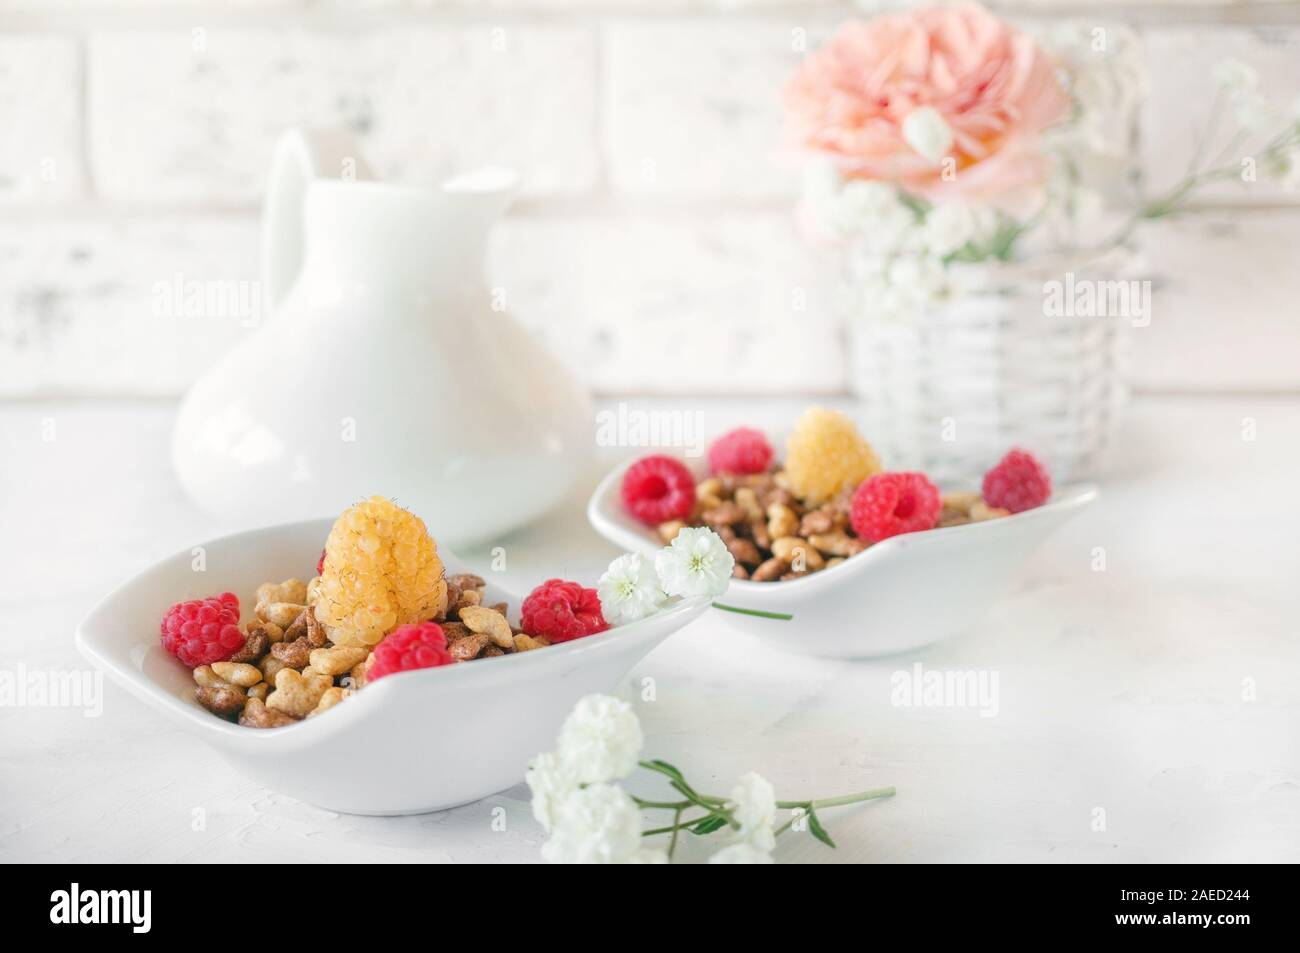 Organic muesli with raspberries for Breakfast in a white porcelain Cup with small white flowers on a light background. Stock Photo